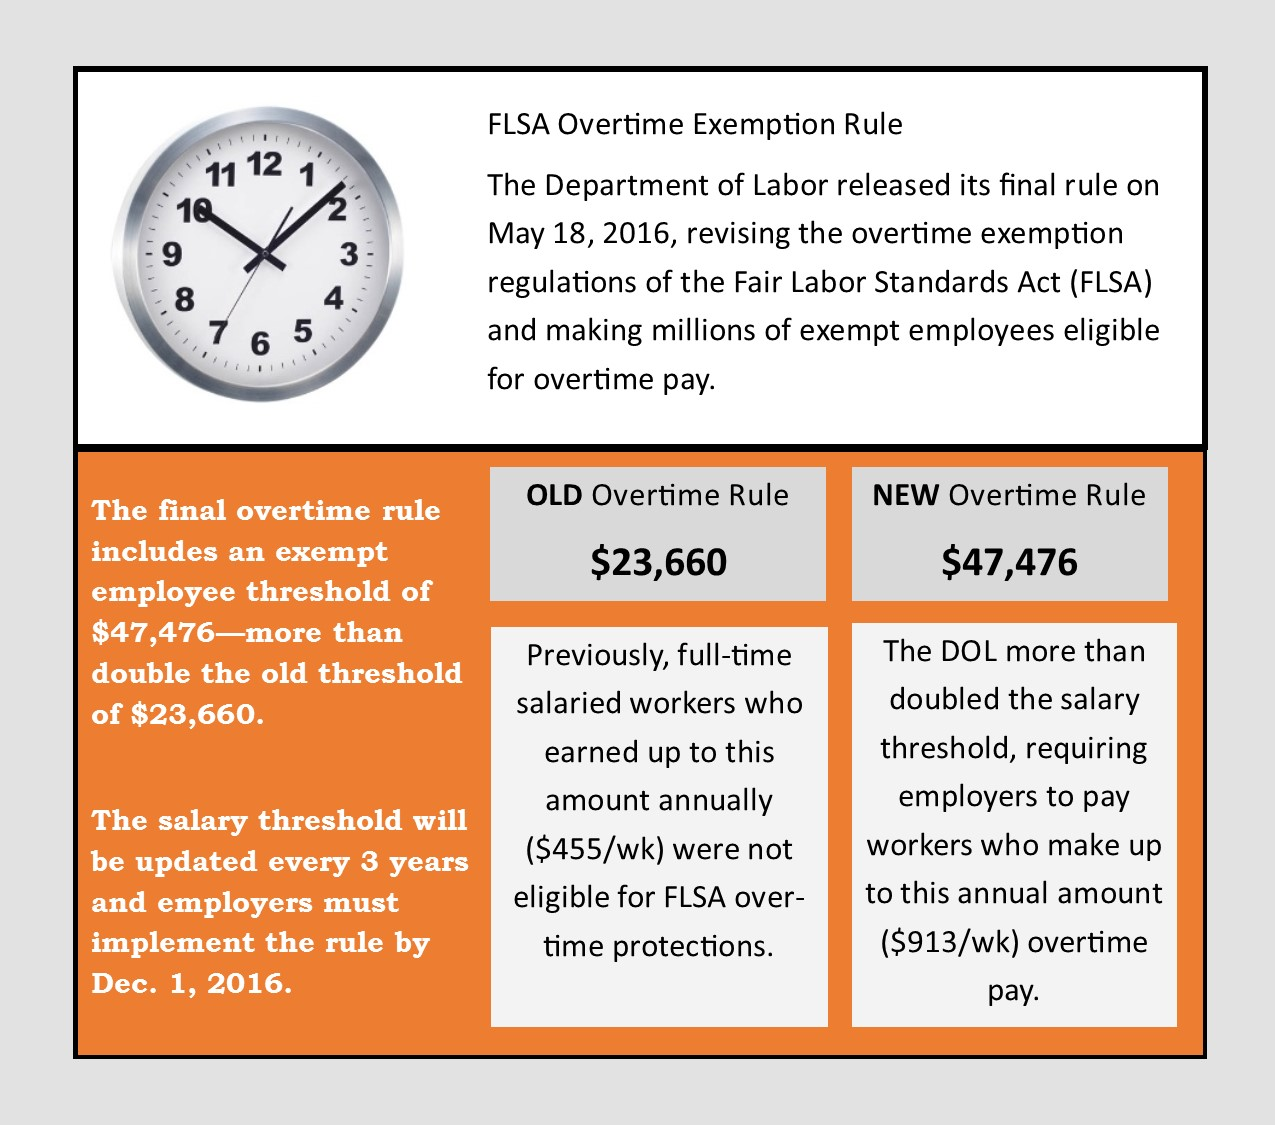 FLSA Overtime Updated Exemption Rule